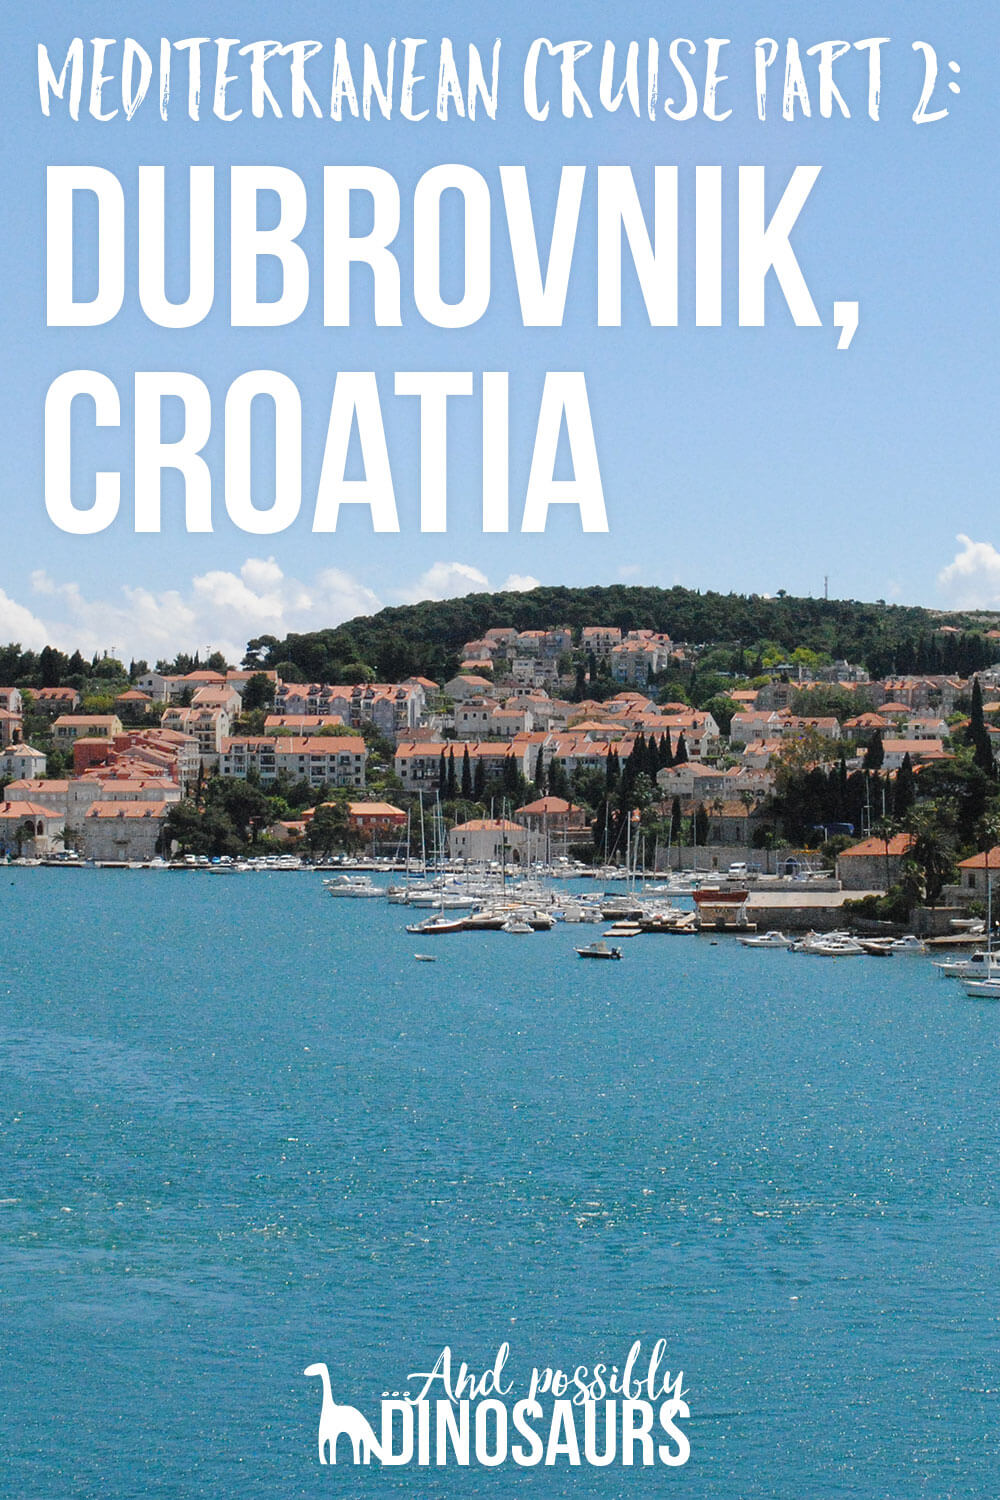 Thinking of visiting Dubrovnik, Croatia on a cruise? It's a beautiful place! Click through to find out what some of the best things to do are!